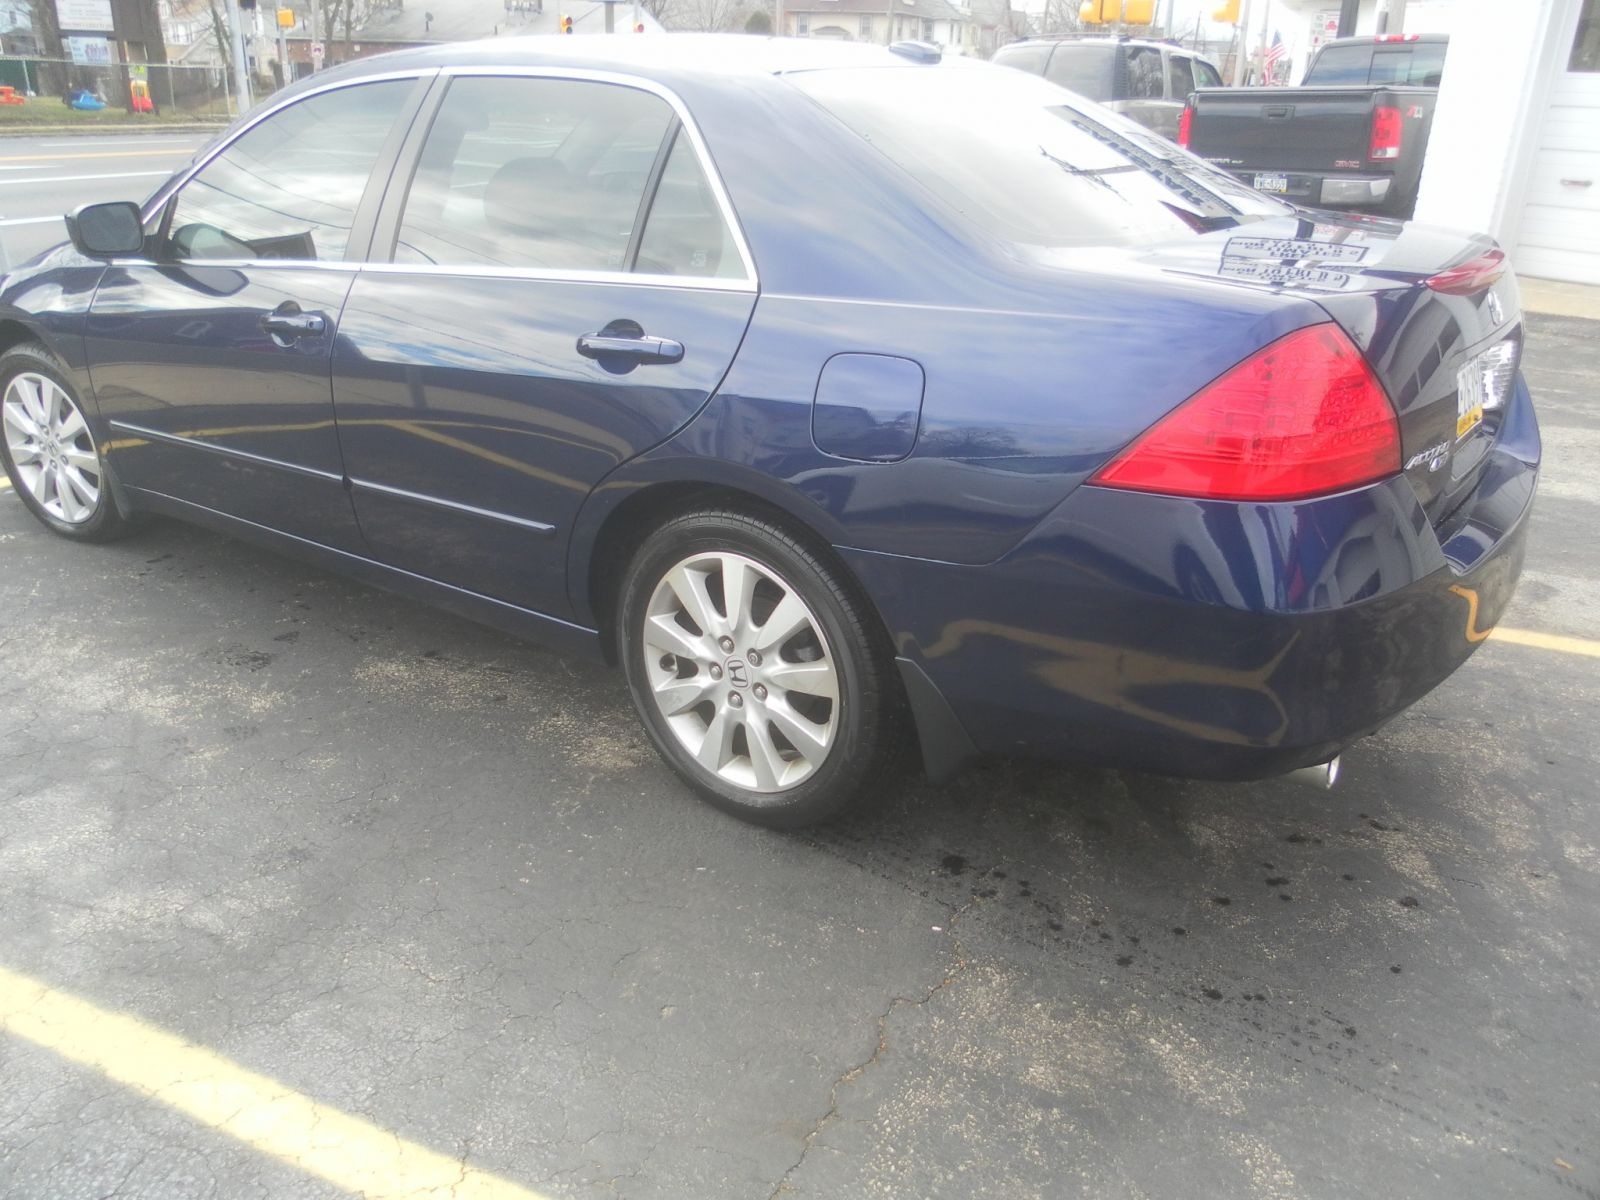 Hunter's CARSTAR: Honda Accord - AFTER